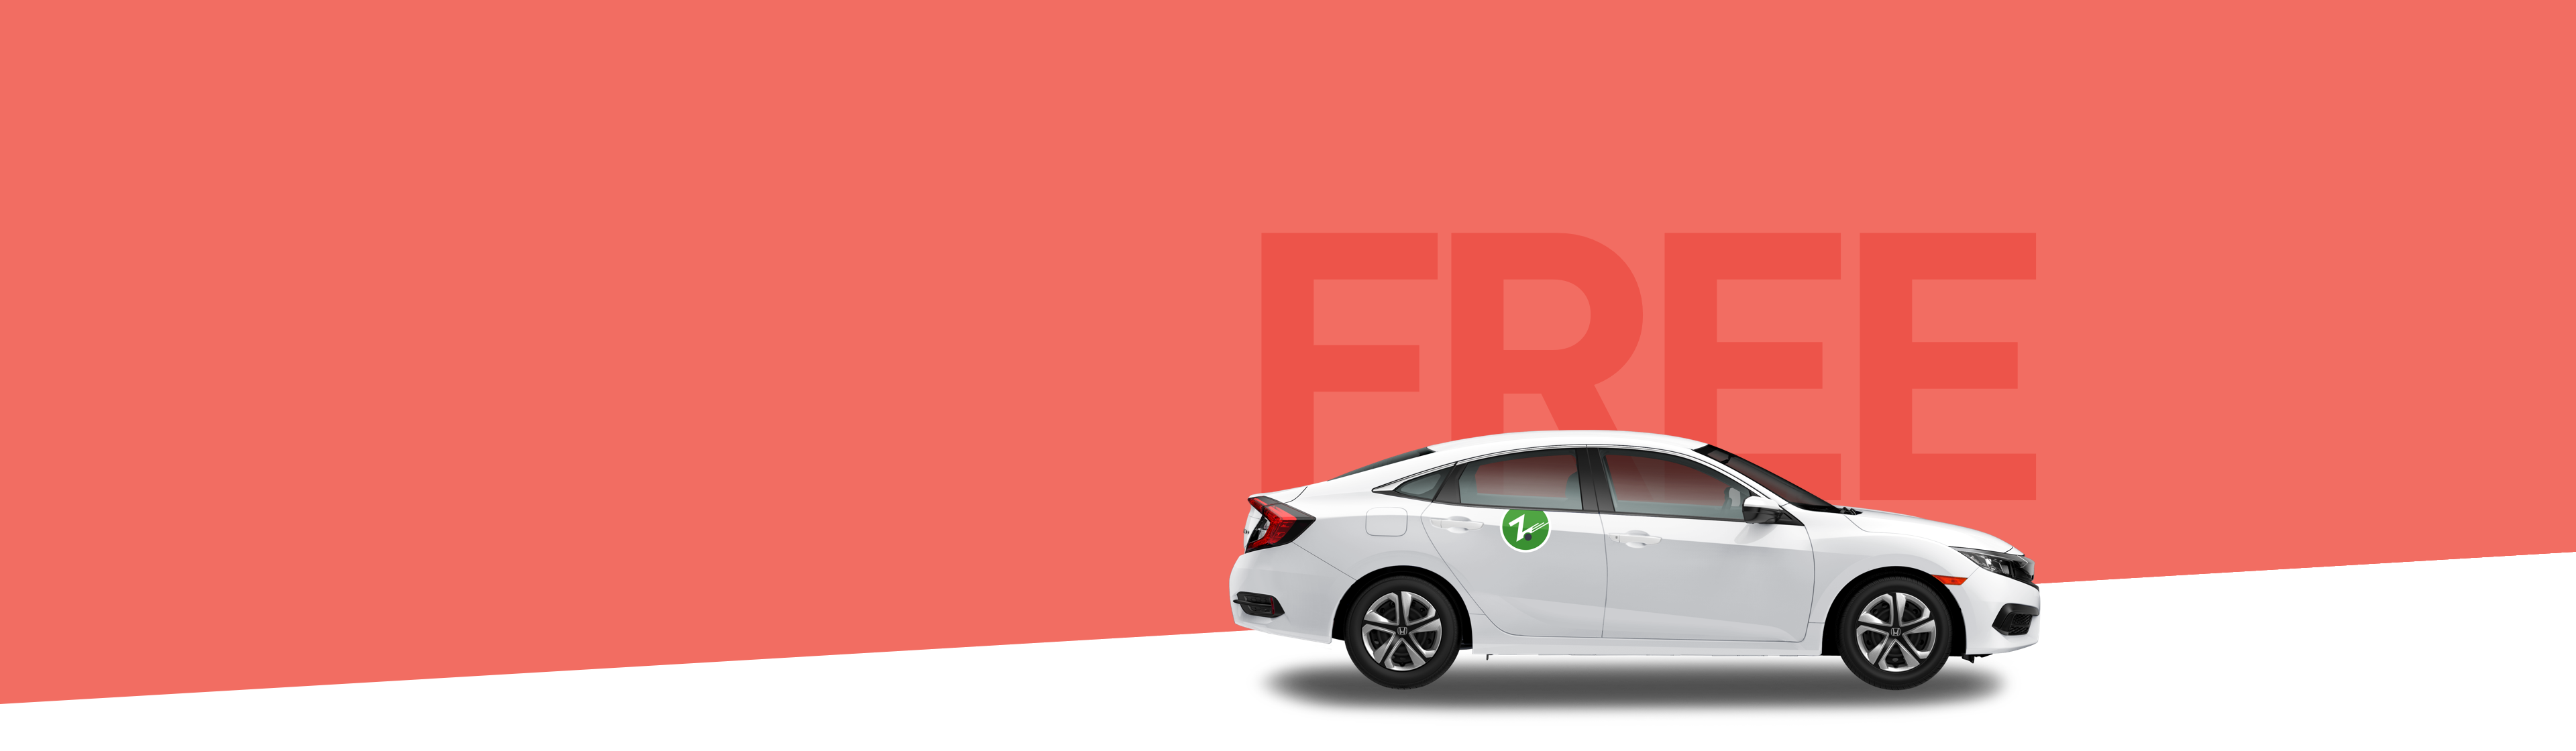 free-trial-summer-coral-background-white-zipcar